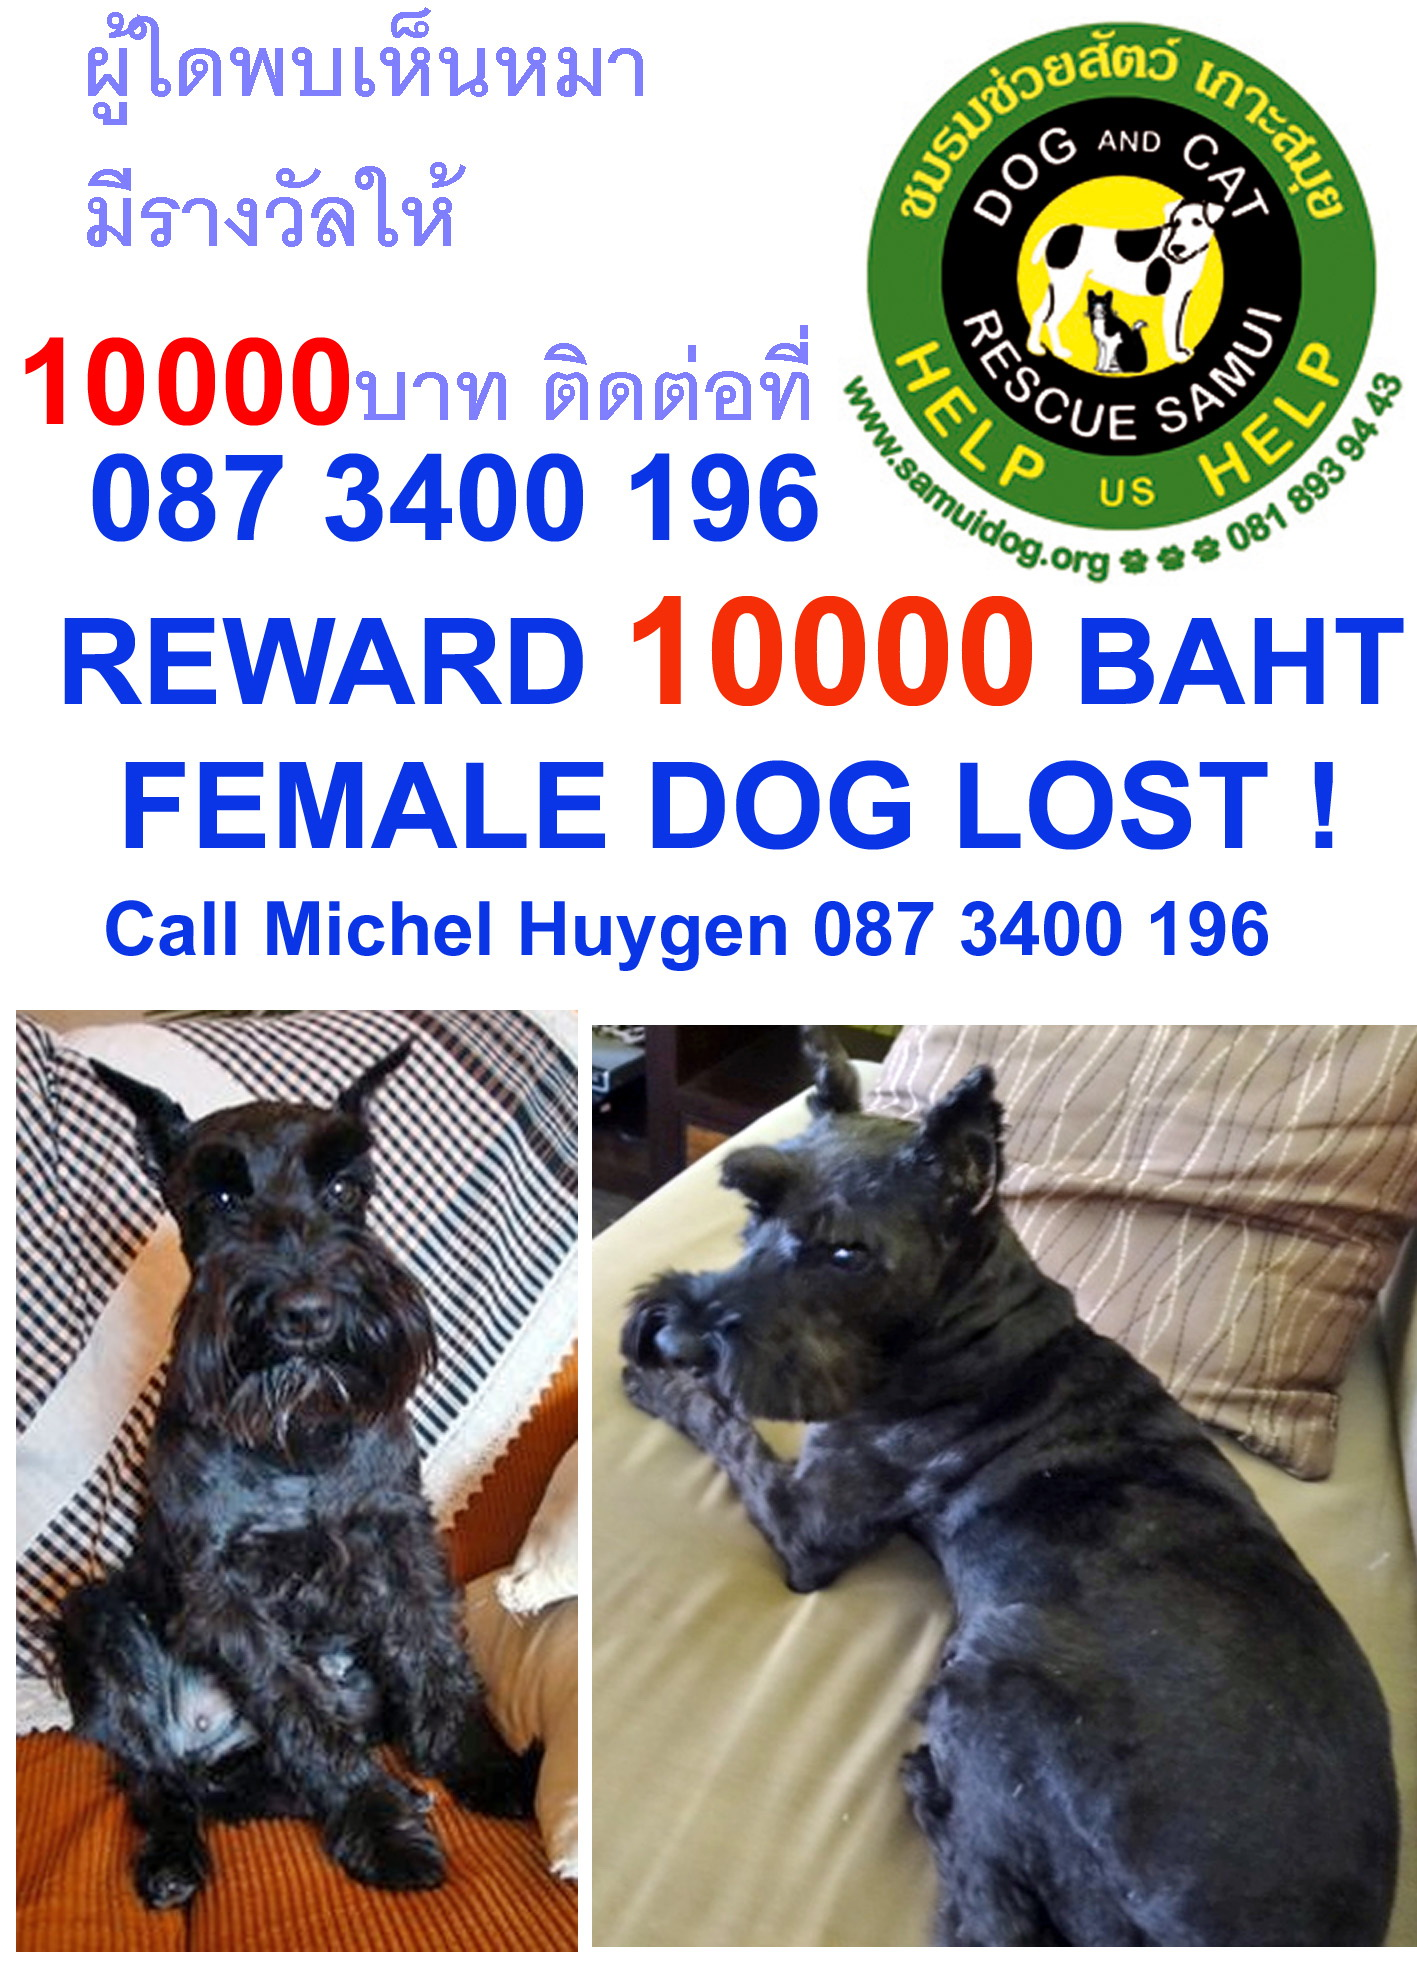 Your help needed to find a lost dog | Samui Times